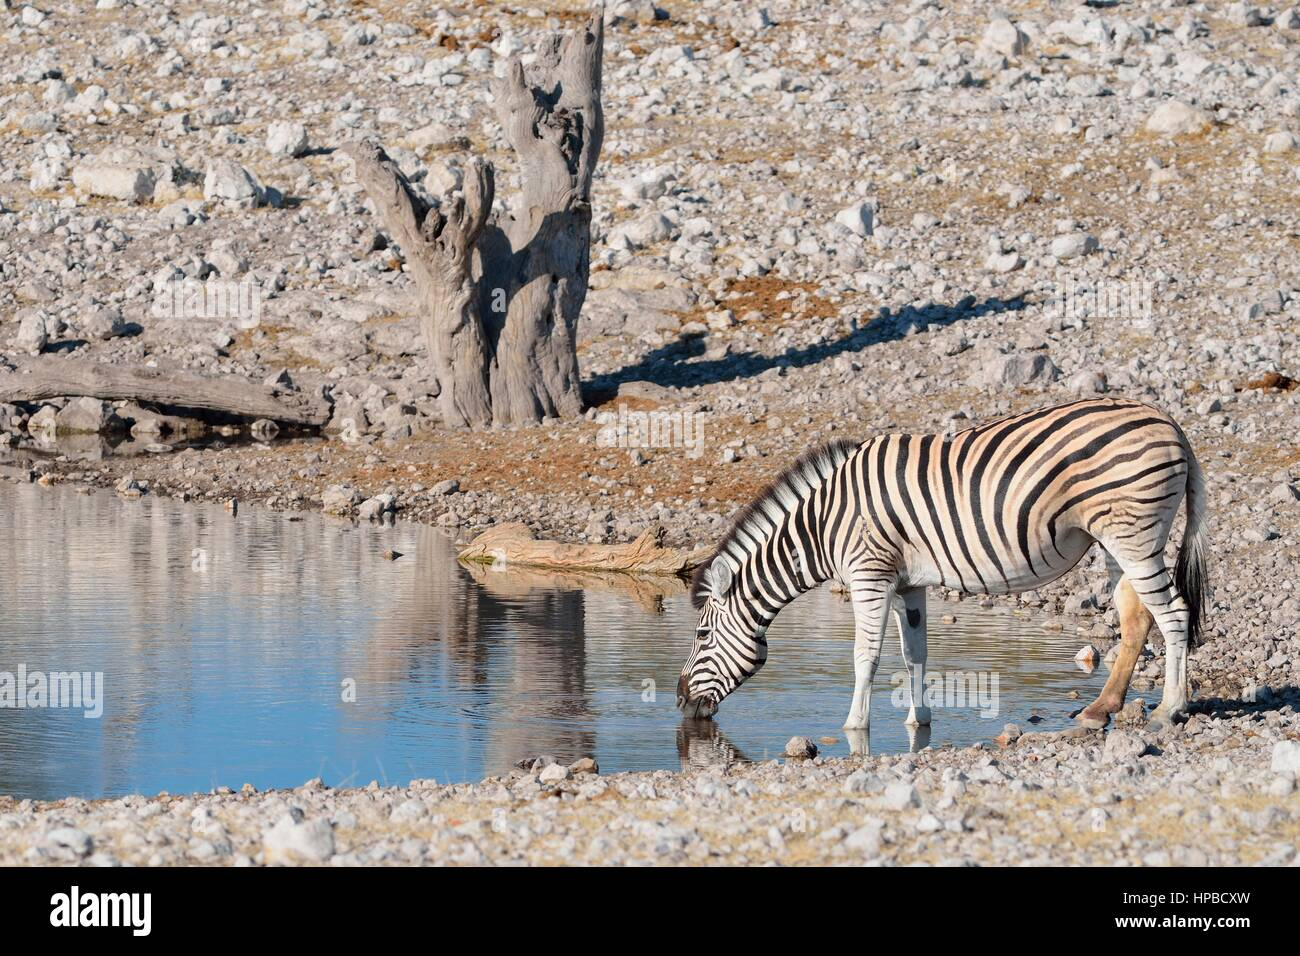 Le zèbre de Burchell (Equus quagga burchellii), boire à Waterhole, Etosha National Park, Namibie, Afrique Photo Stock